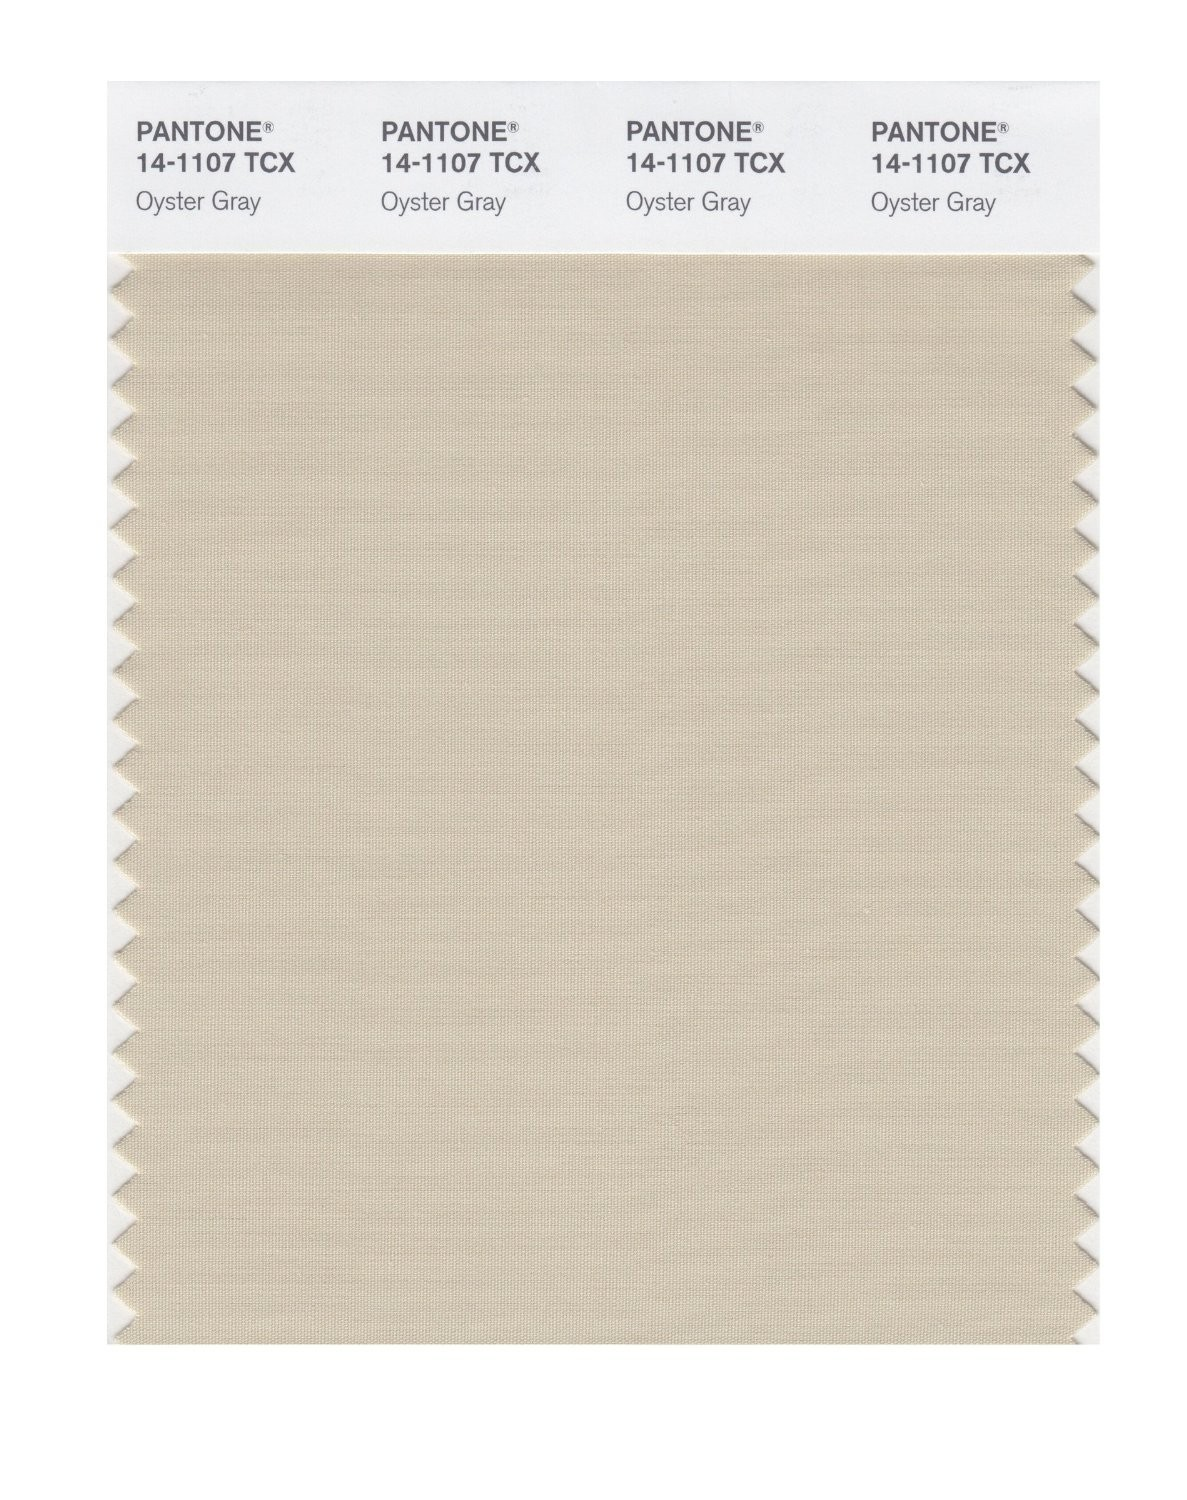 Pantone 14-1107 TCX Swatch Card Oyster Gray